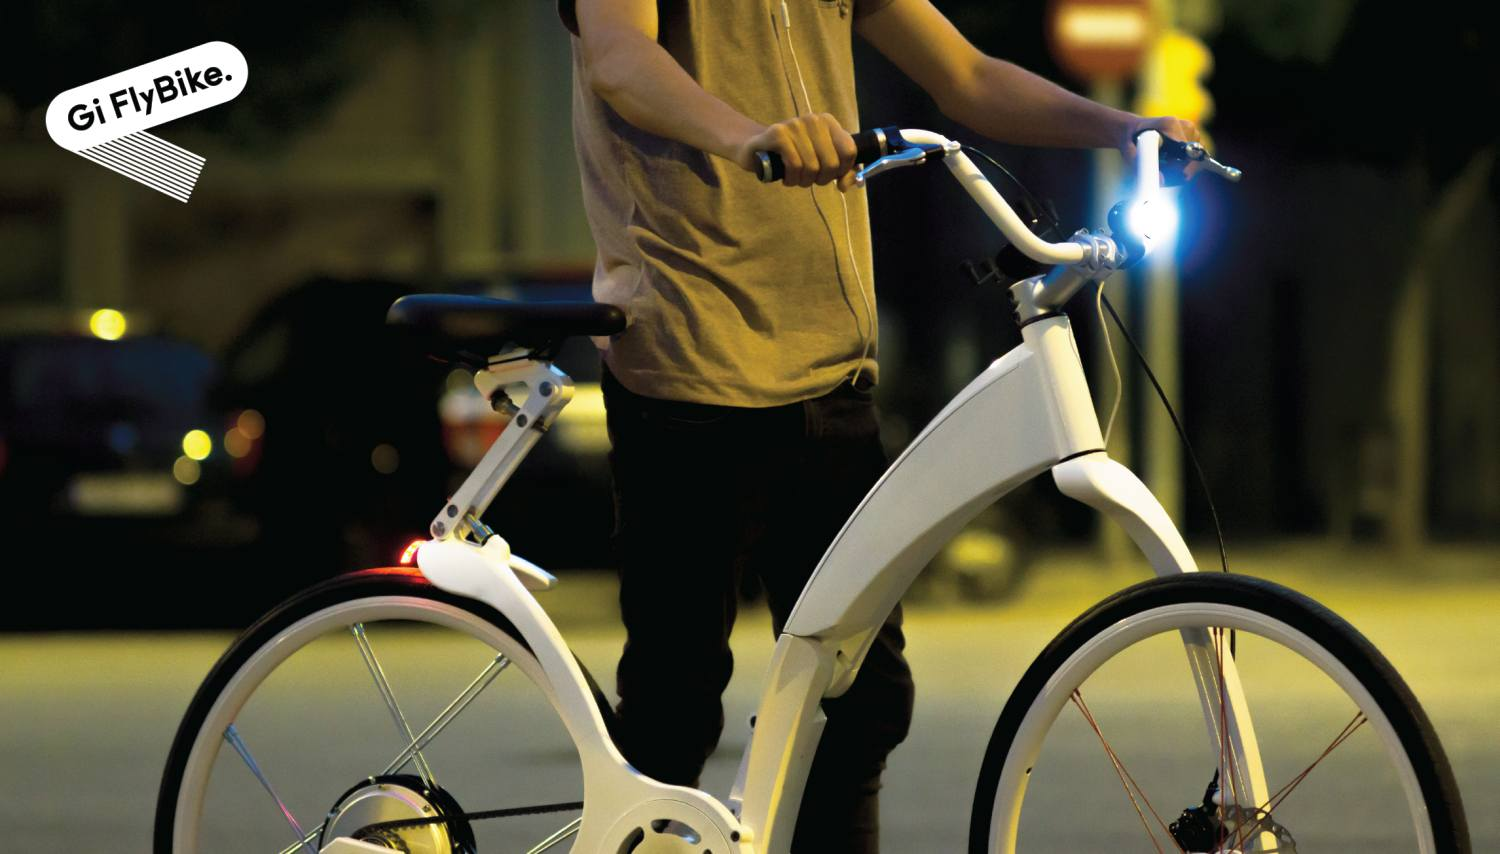 gi flybike_smart light, white logo